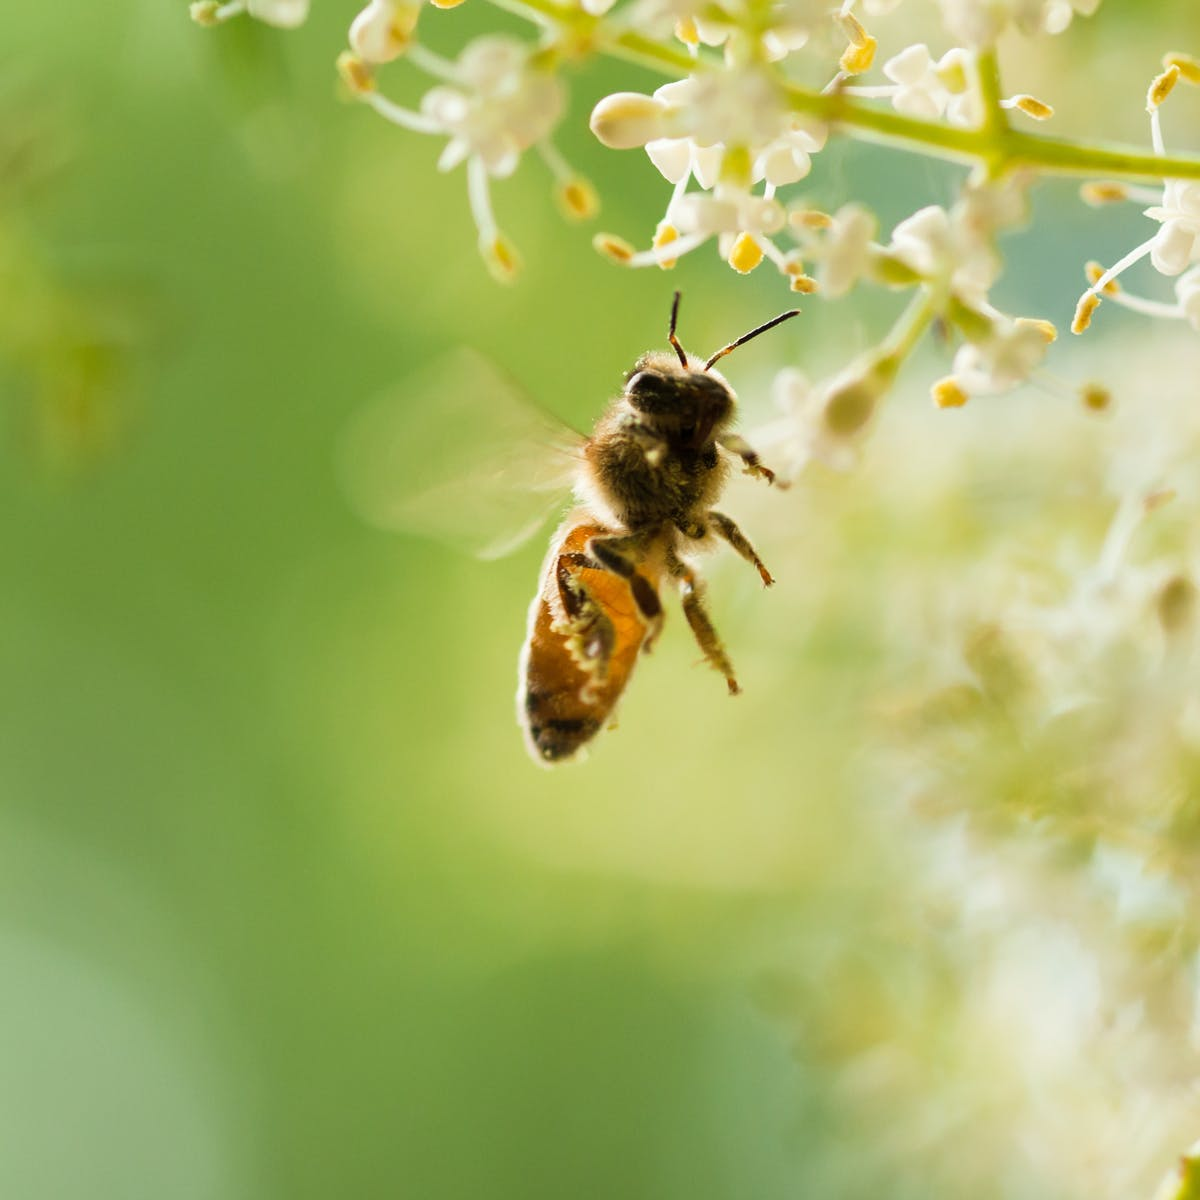 Pollinator biodiversity has wide-ranging benefits for farms